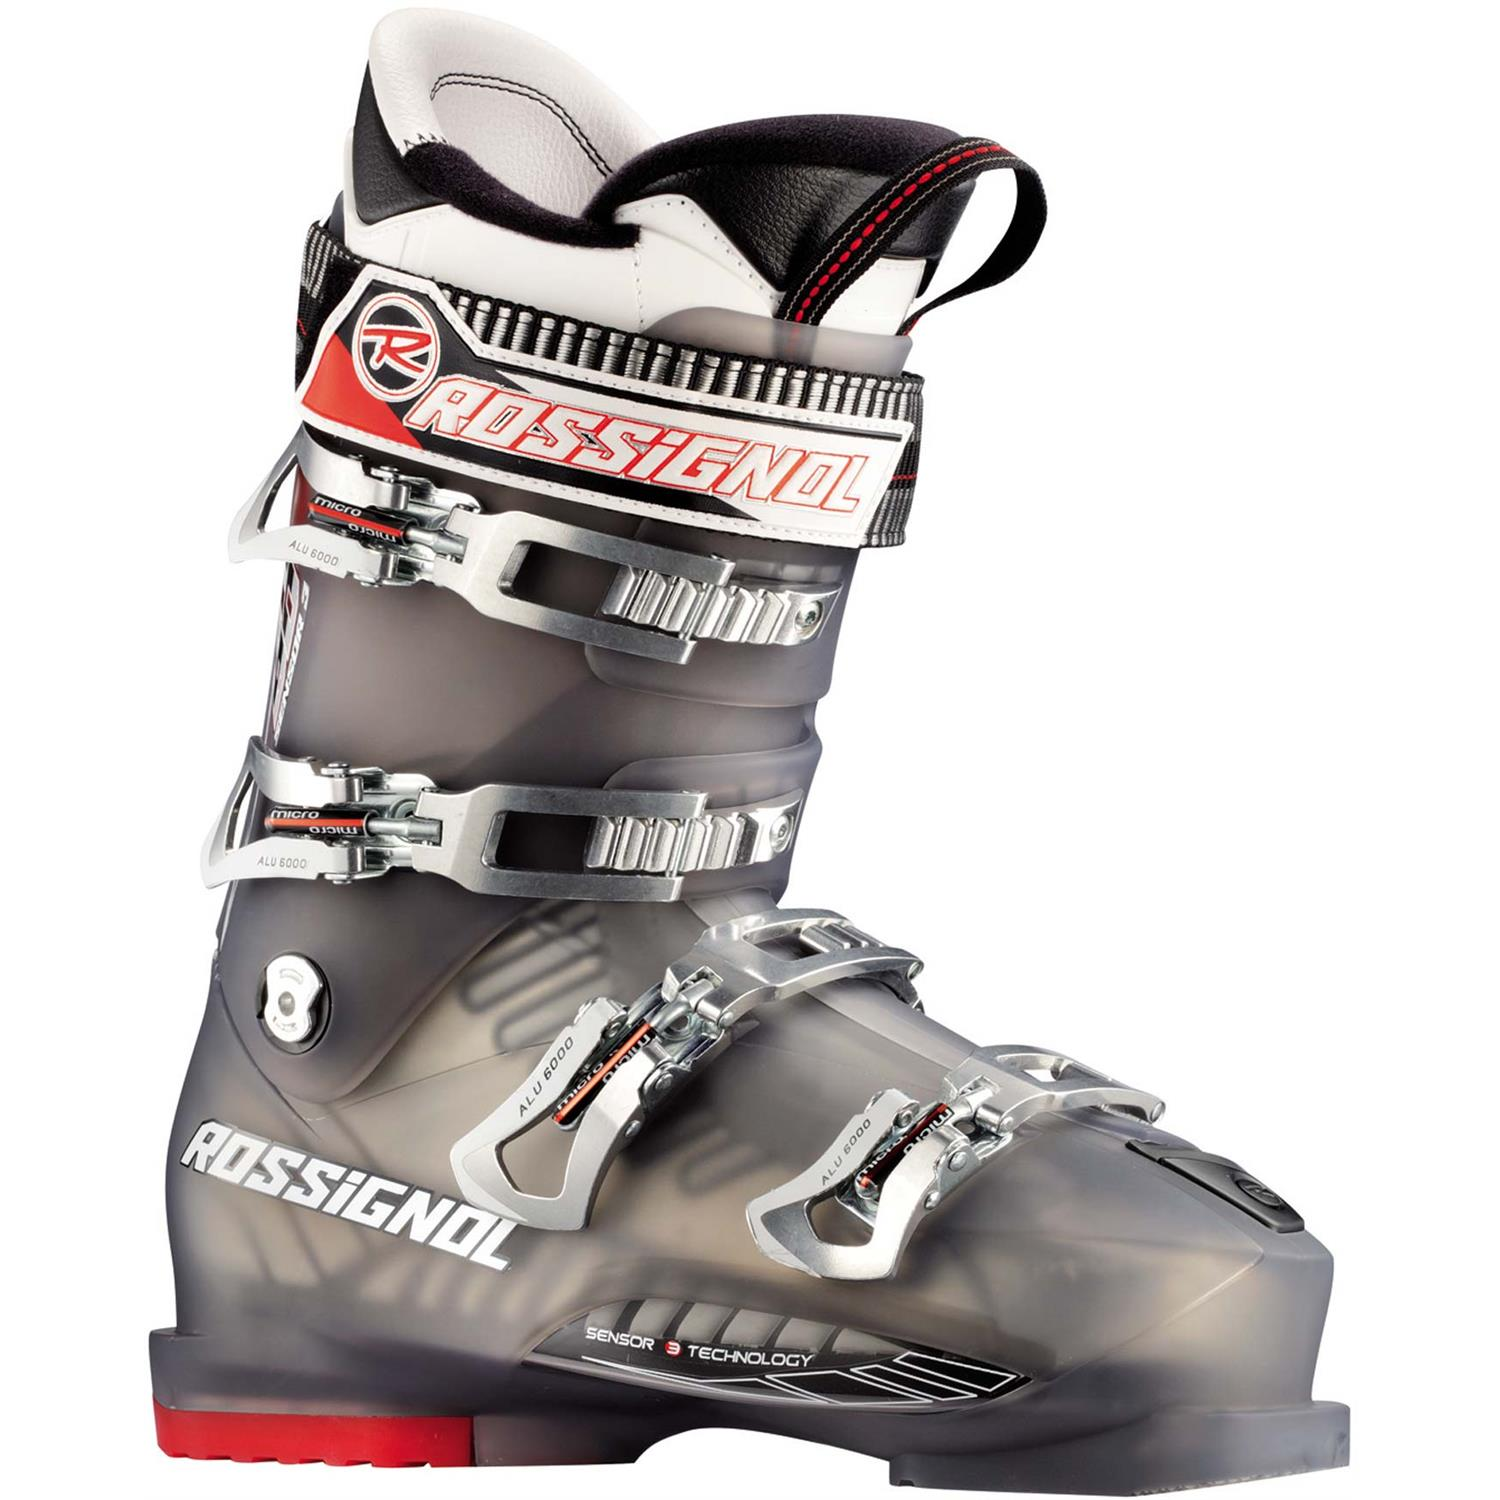 Shoes online for women Buy ski boots online